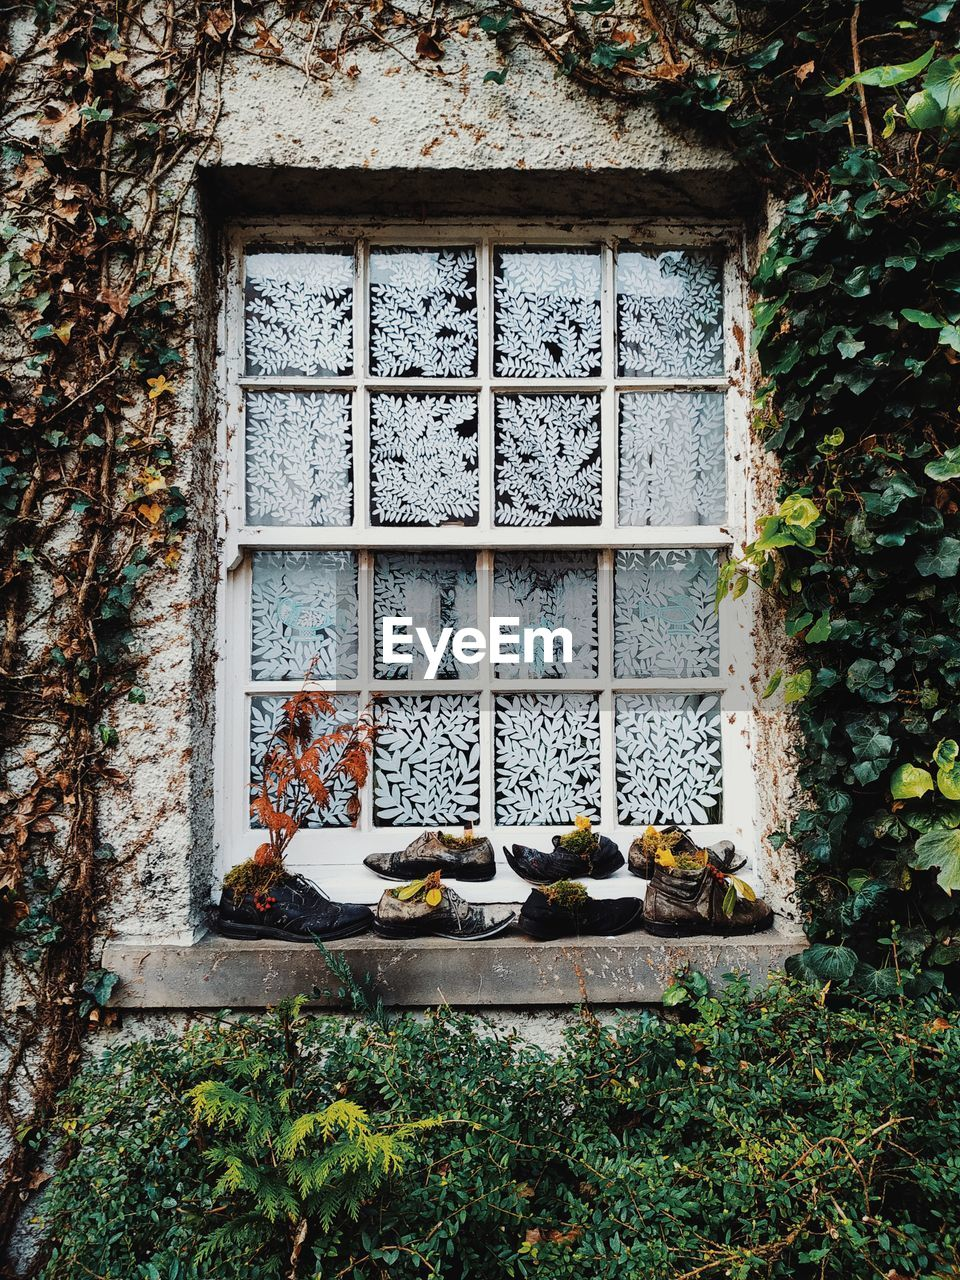 window, architecture, built structure, day, no people, building, building exterior, food and drink, plant, food, house, outdoors, nature, wall - building feature, growth, glass - material, wood - material, freshness, tree, old